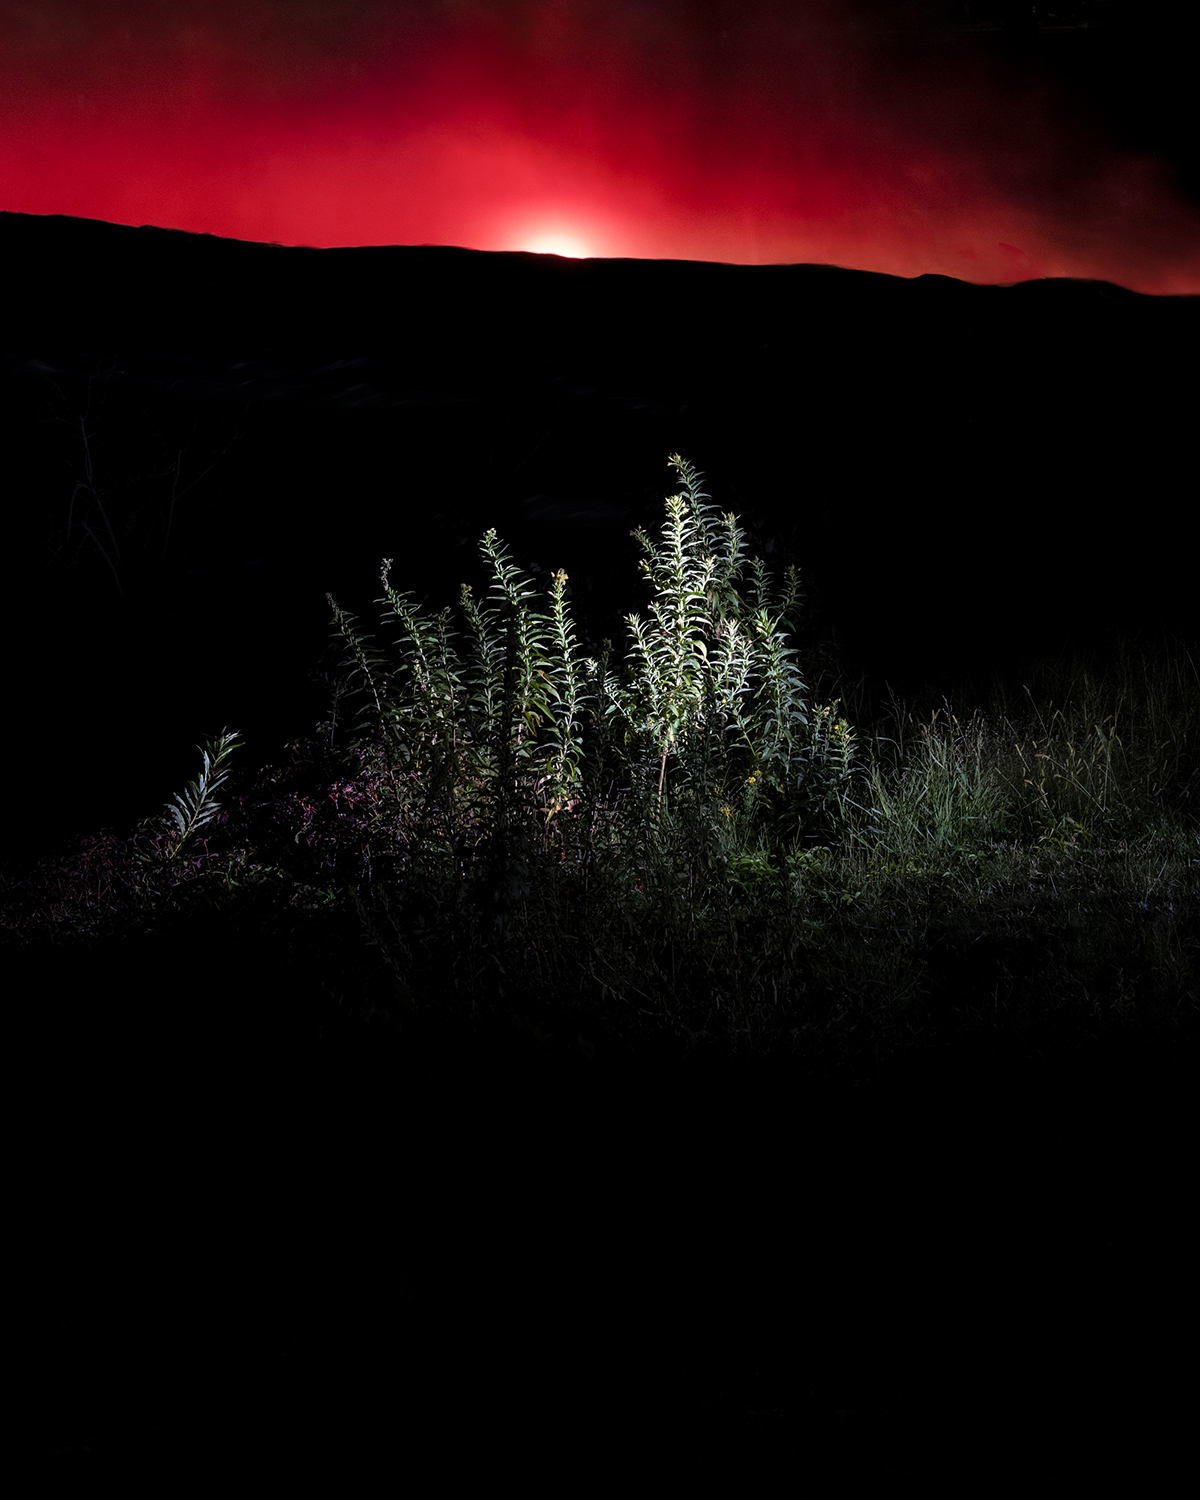 Plants highlighted in the night, amidst darkness and a red sky.